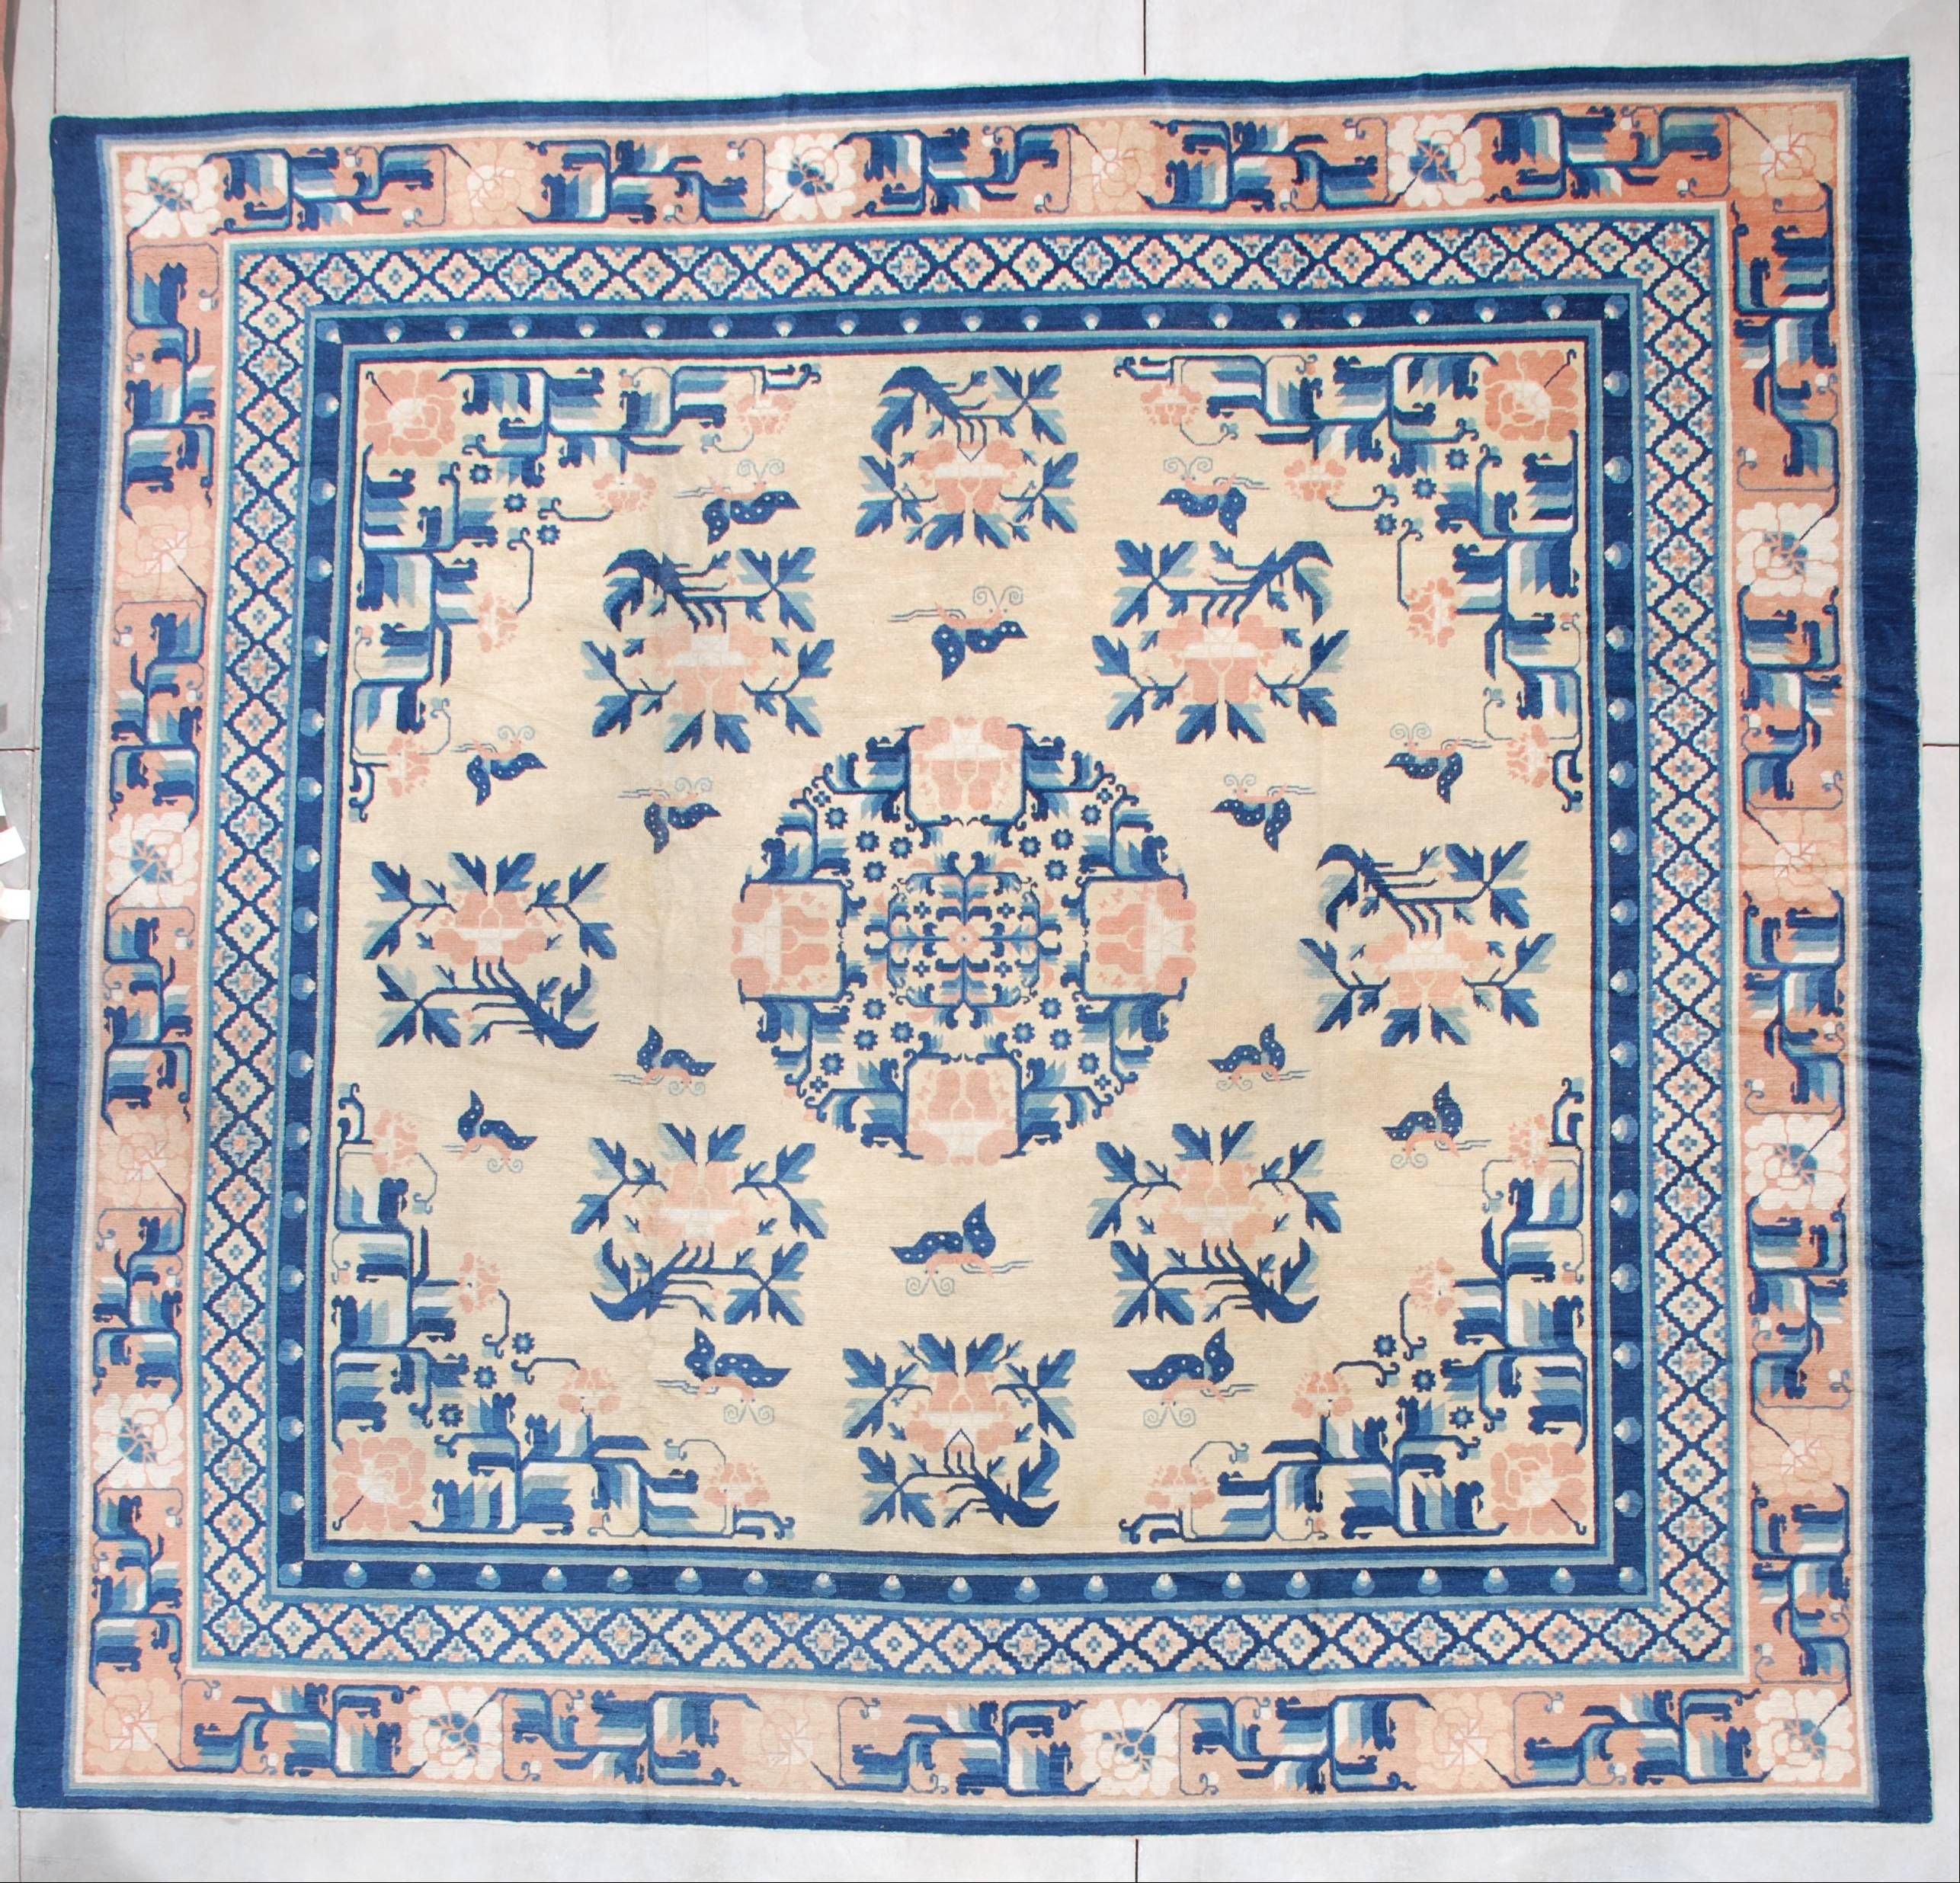 7256 Antique Ningxia Chinese Rug 12 3 X 11 9 Antique Oriental Rugs Chinese Rug Antique Oriental Rugs Rugs